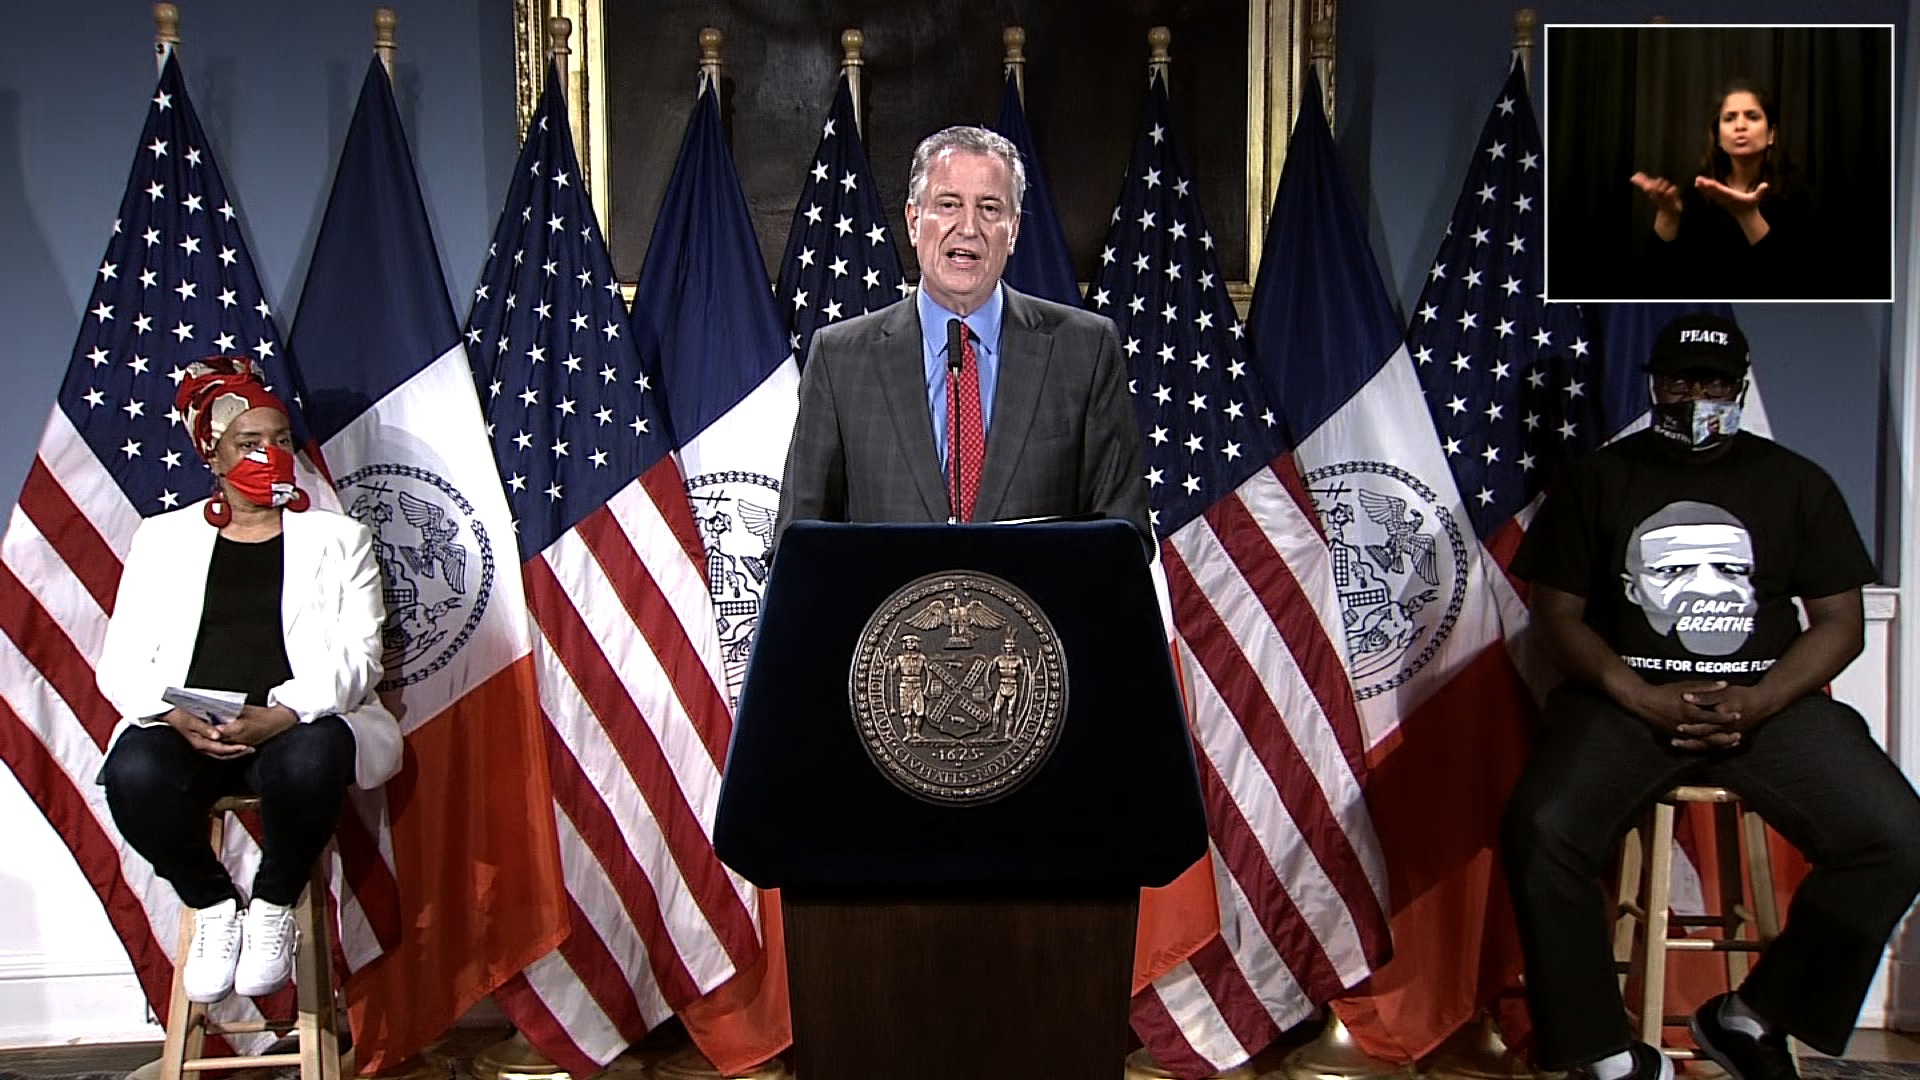 New York City Mayor Bill de Blasio speaks during a press conference in New York on June 9.